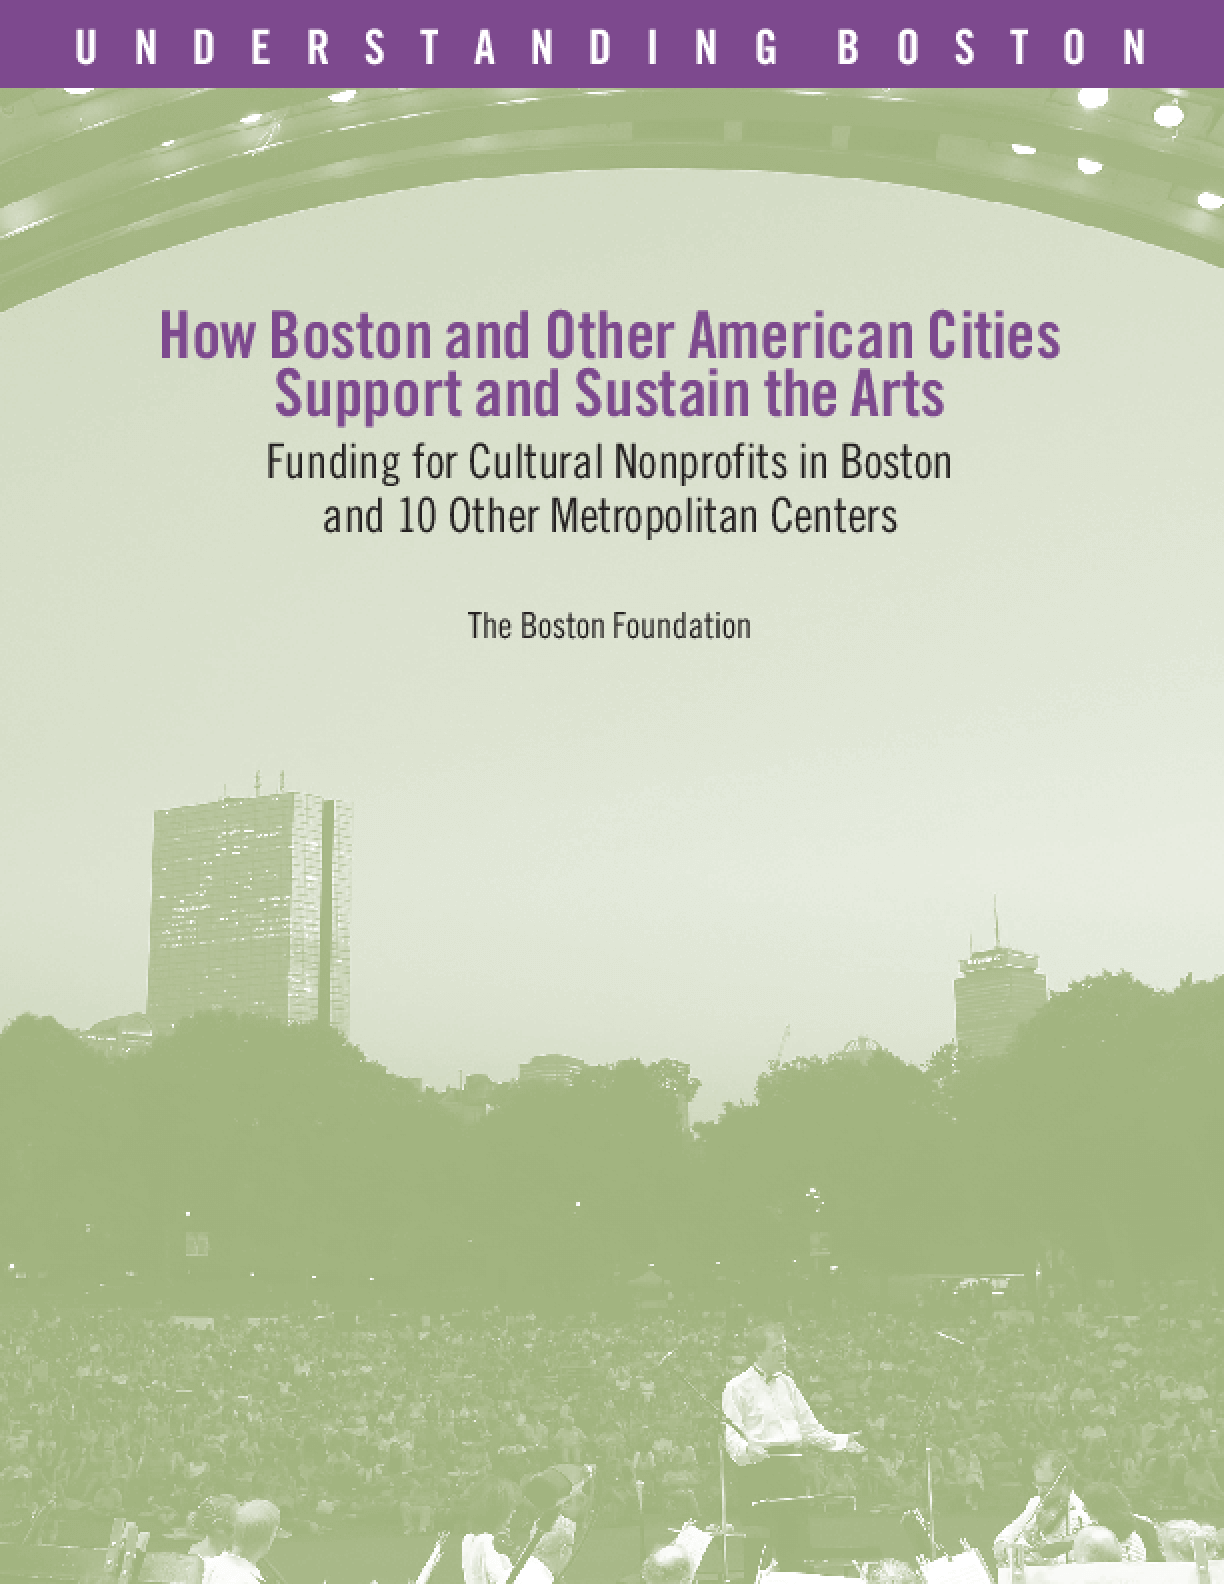 How Boston and Other American Cities Support and Sustain the Arts: Funding for Cultural Nonprofits in Boston and 10 Other Metropolitan Centers